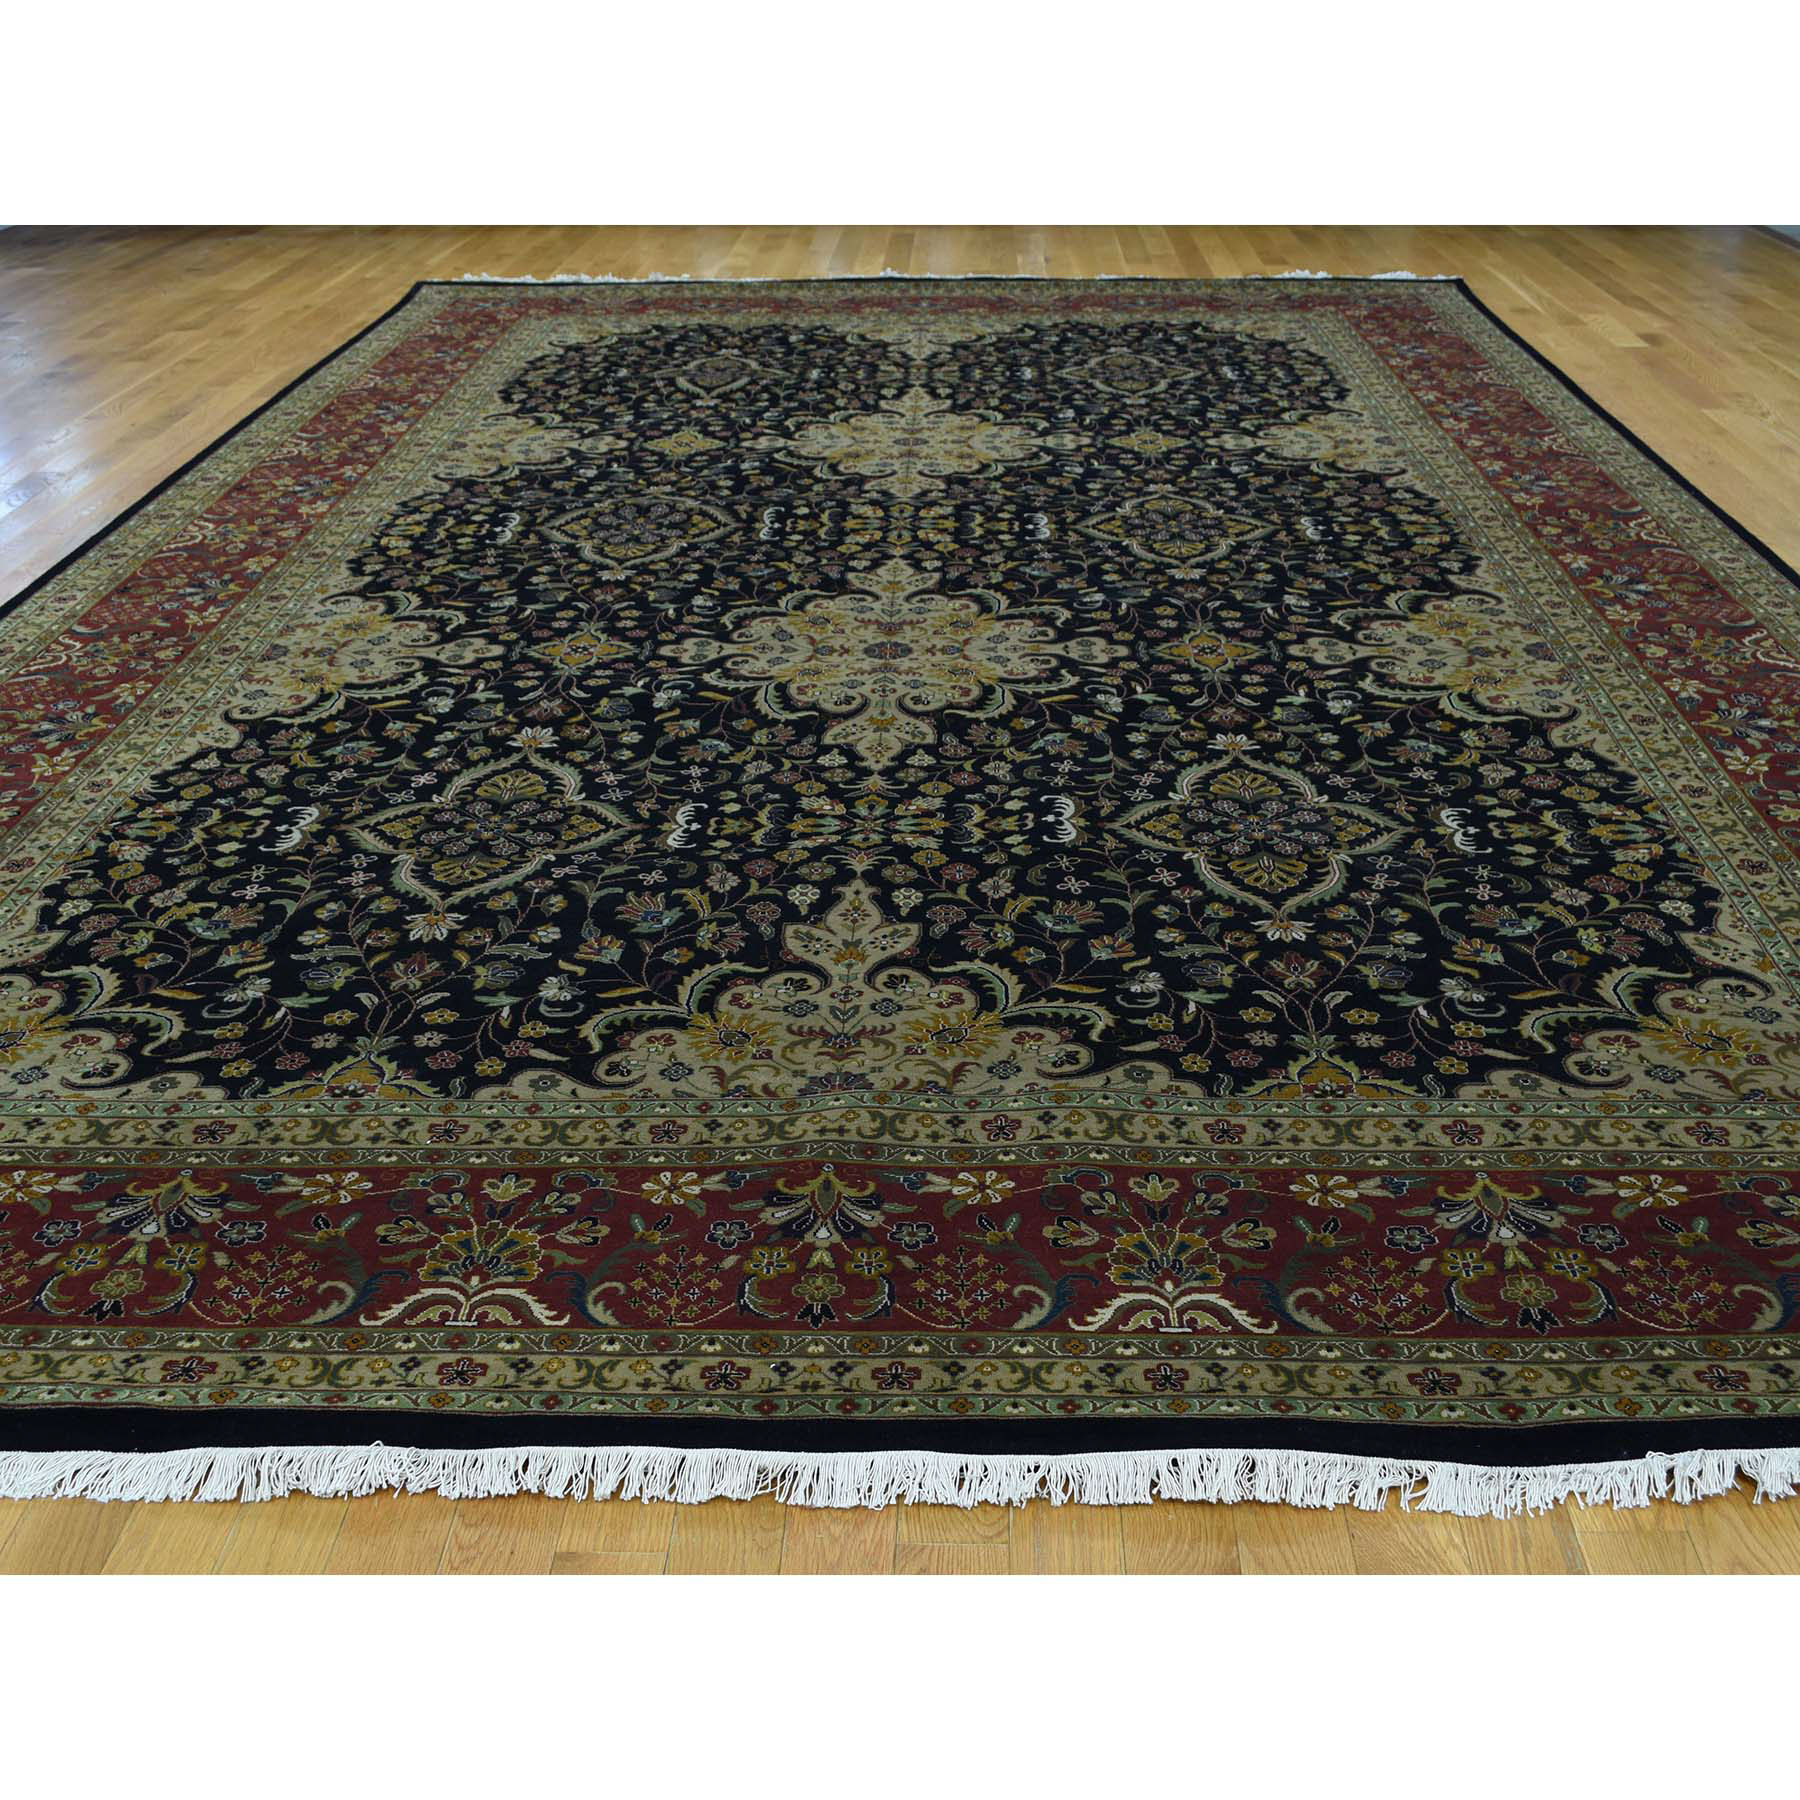 10-x15-10  Hand-Knotted Kashan Revival 300 Kpsi New Zealand Wool Gallery